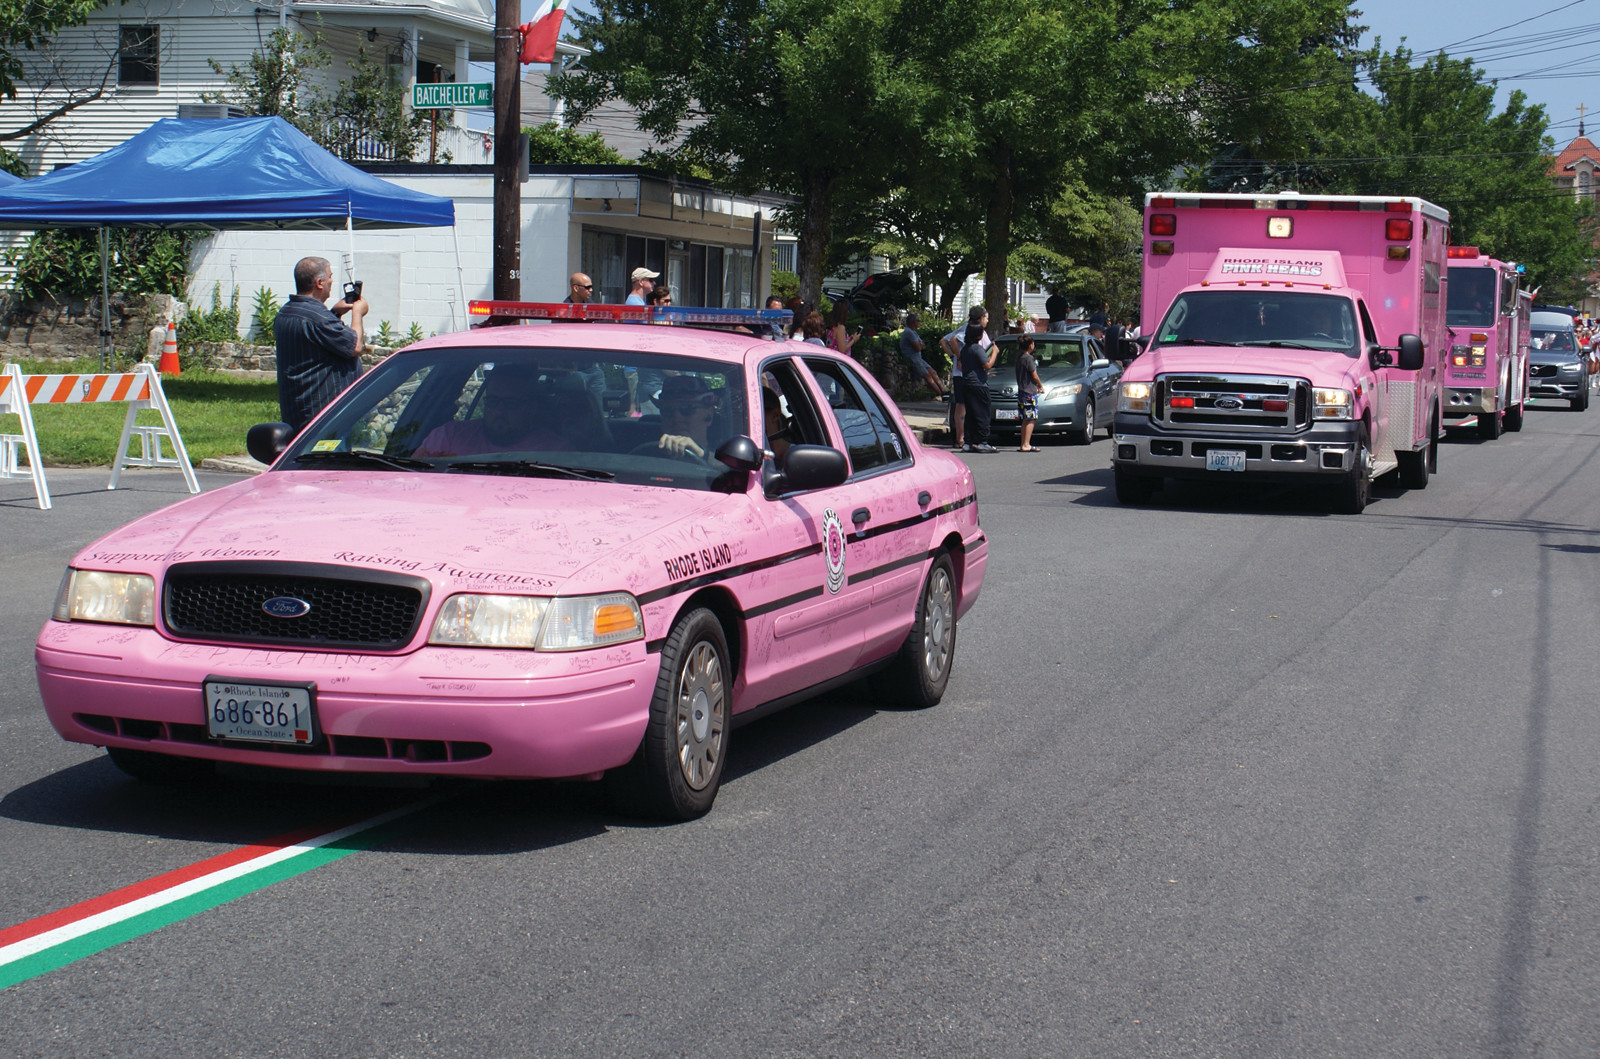 PINK HEALS: The Pink Heals vehicles also took part in the parade, with Susanne leading the charge and Jenna the ambulance in the back. Not pictured is Patricia the fire truck.